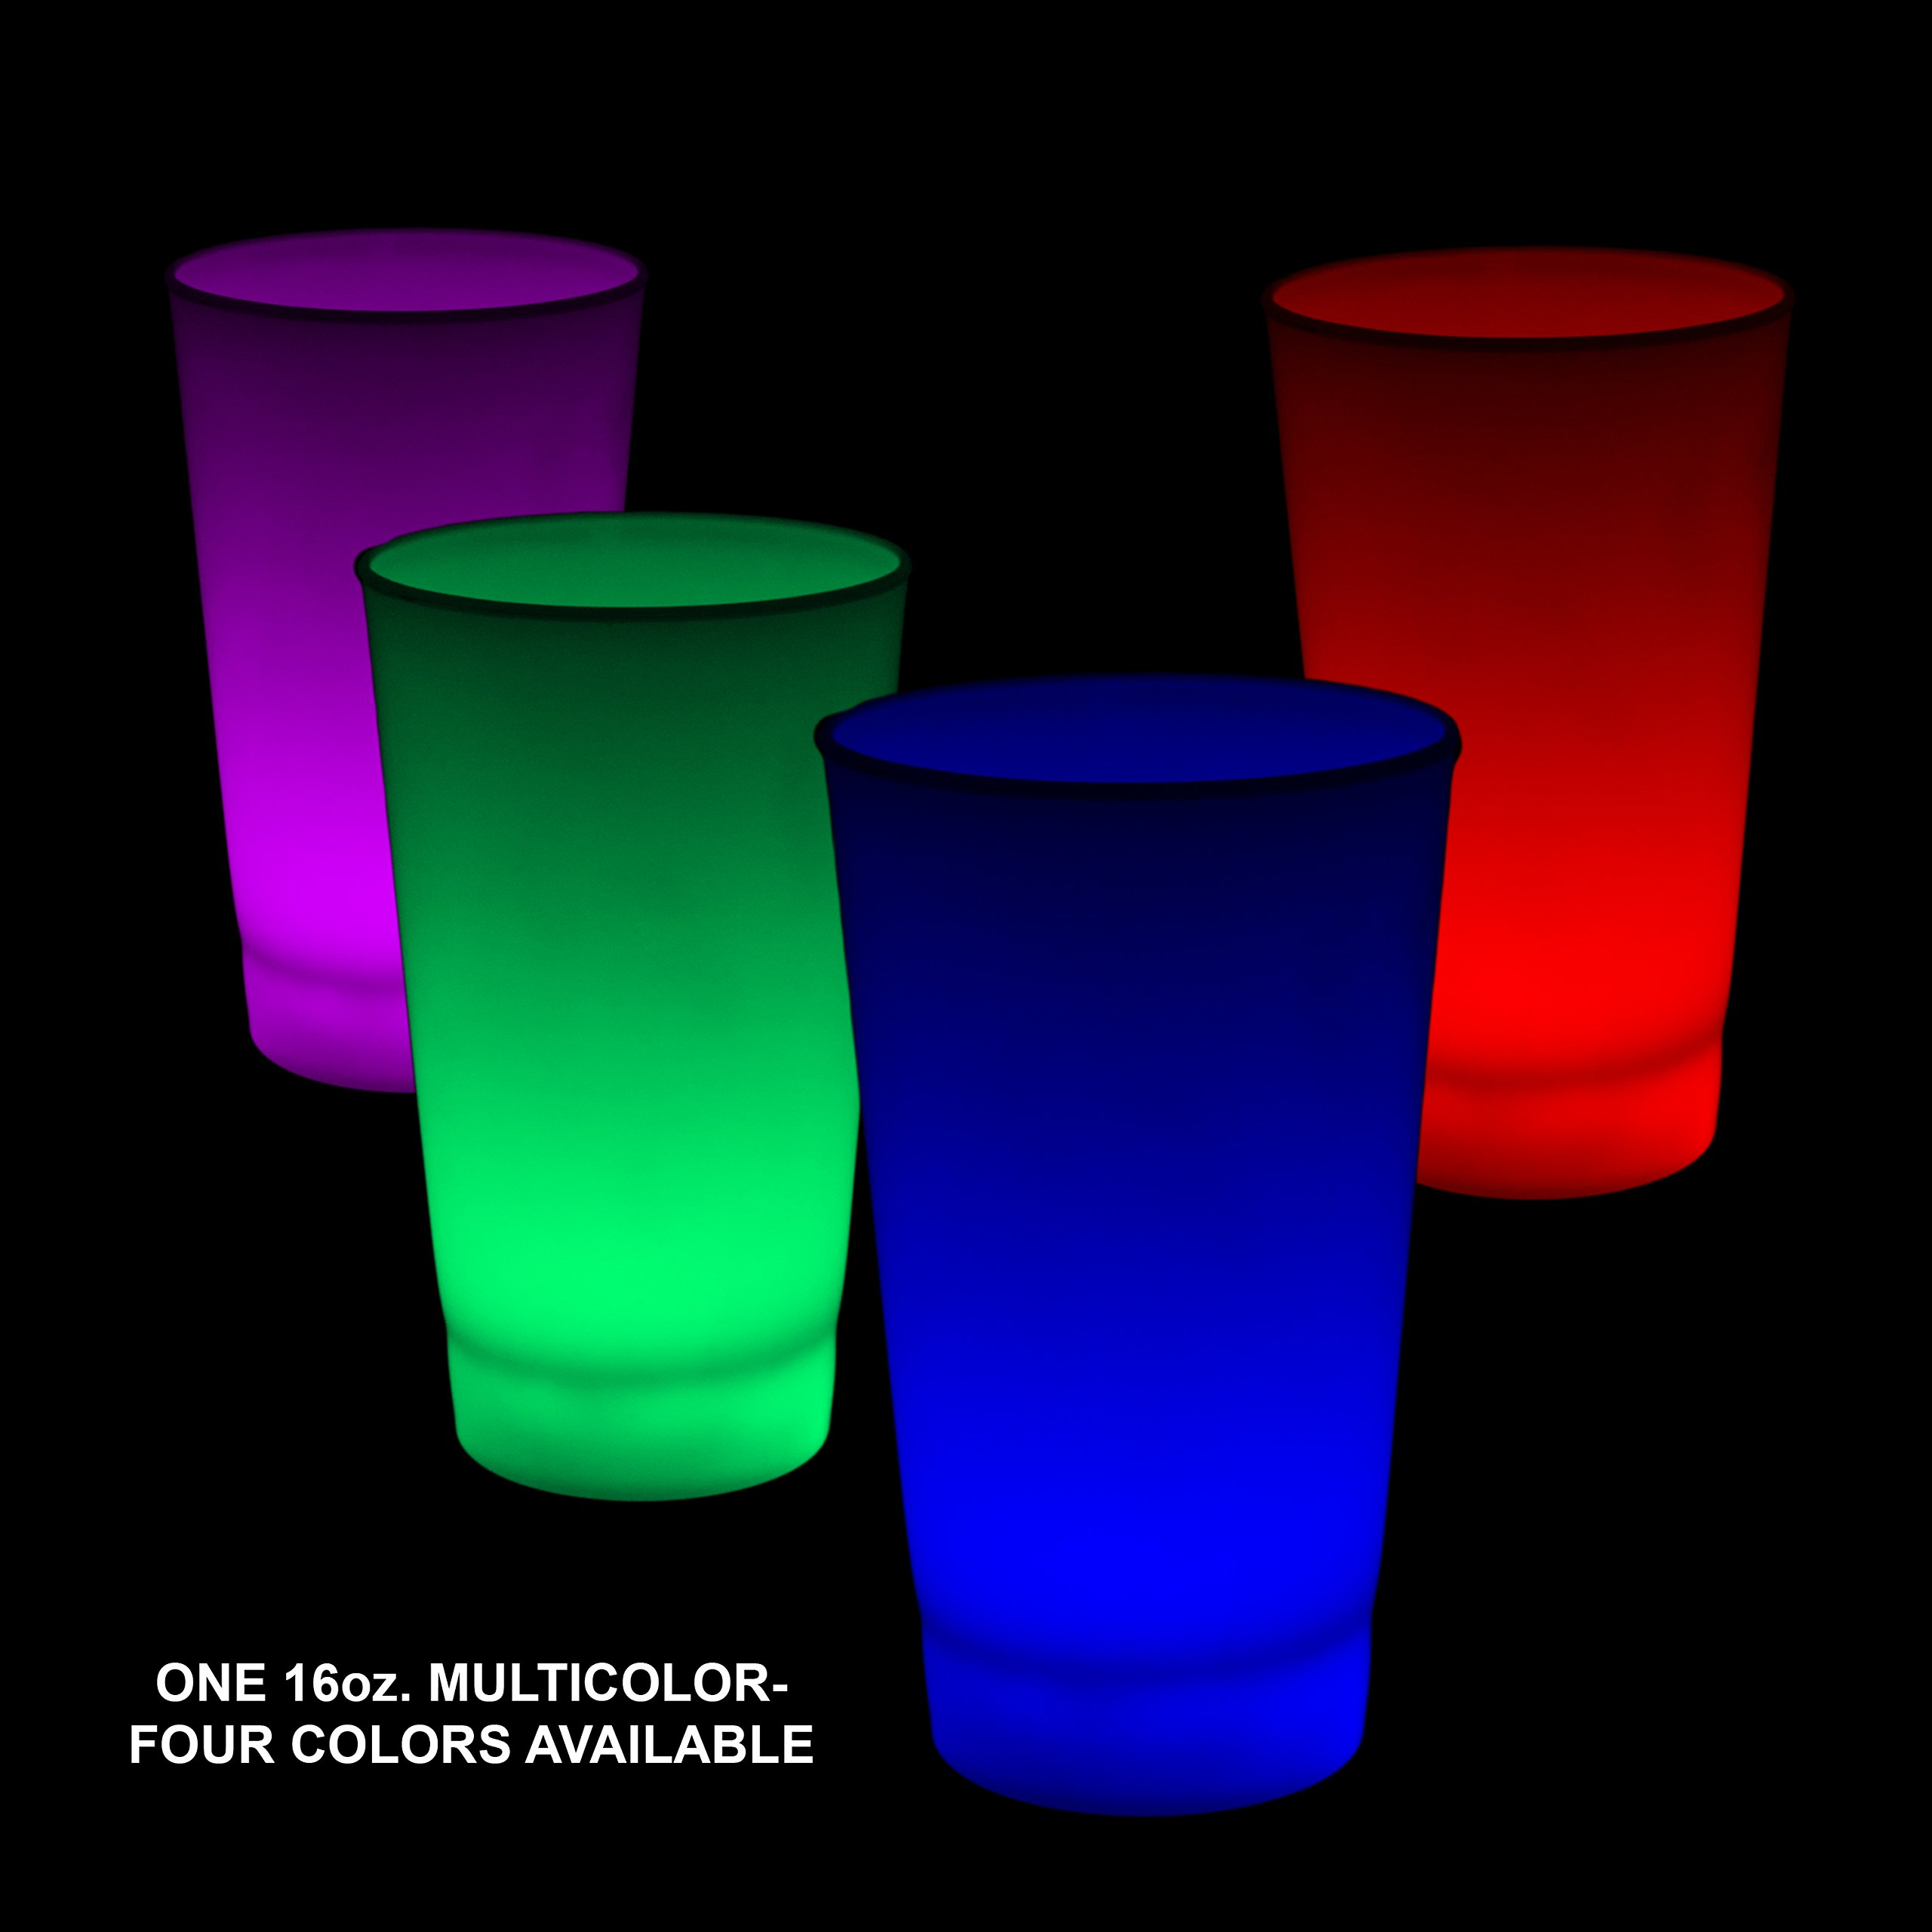 Fun Central I772 1pc 16oz Glow in the Dark LED Light Up Cup, Light Up Party Cups, LED Drinking Cups - for Birthday, Christmas, Halloween, Beach/Disco/Glow in the Dark Party - Multicolor